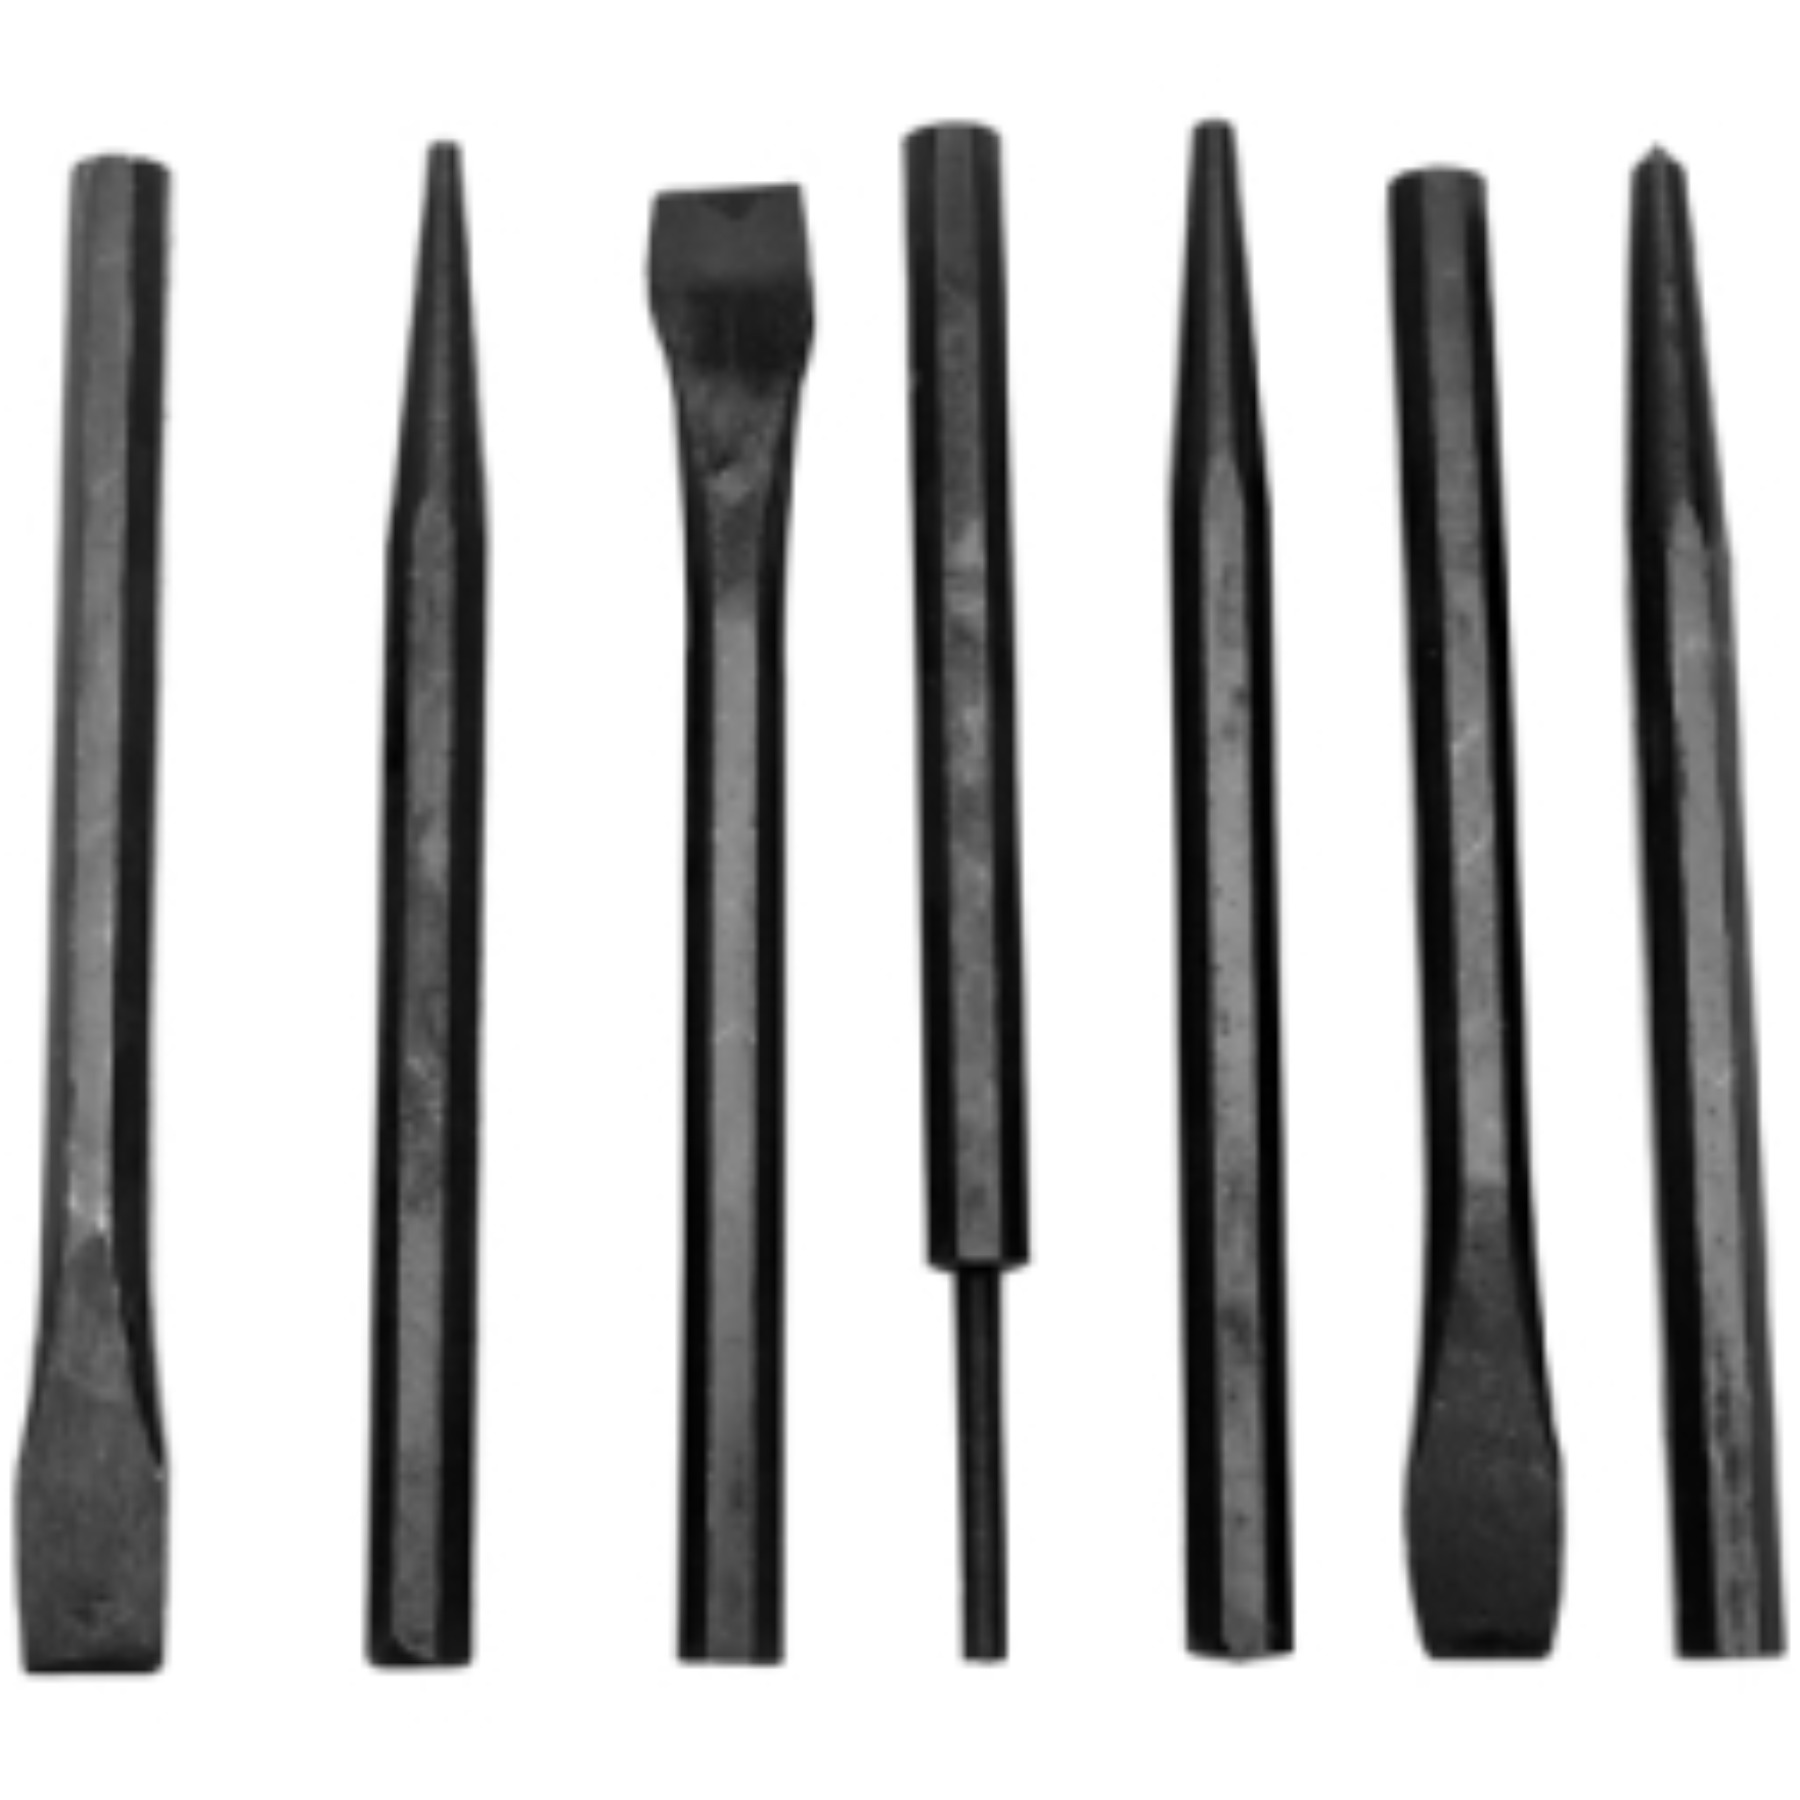 7 PC PUNCH & CHISEL SET